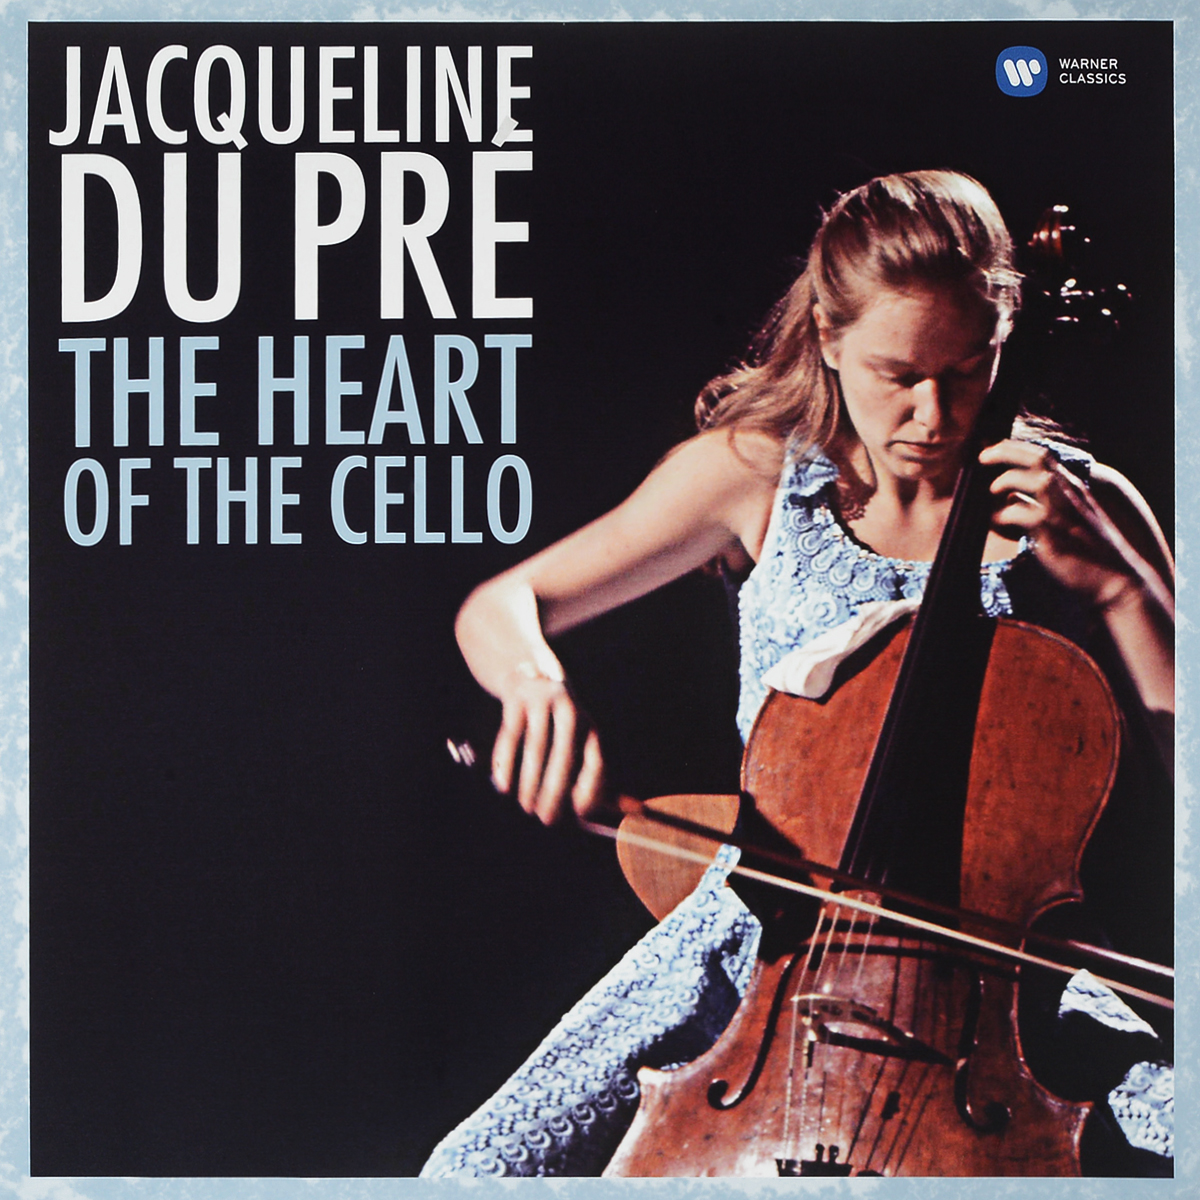 Жаклин Дю Пре Jacqueline Du Pre. The Heart Of The Cello (LP) 1080p ptz ip camera 36x zoom waterproof outdoor dome speed network camera night vision ir 50m p2p cctv security camera onvif